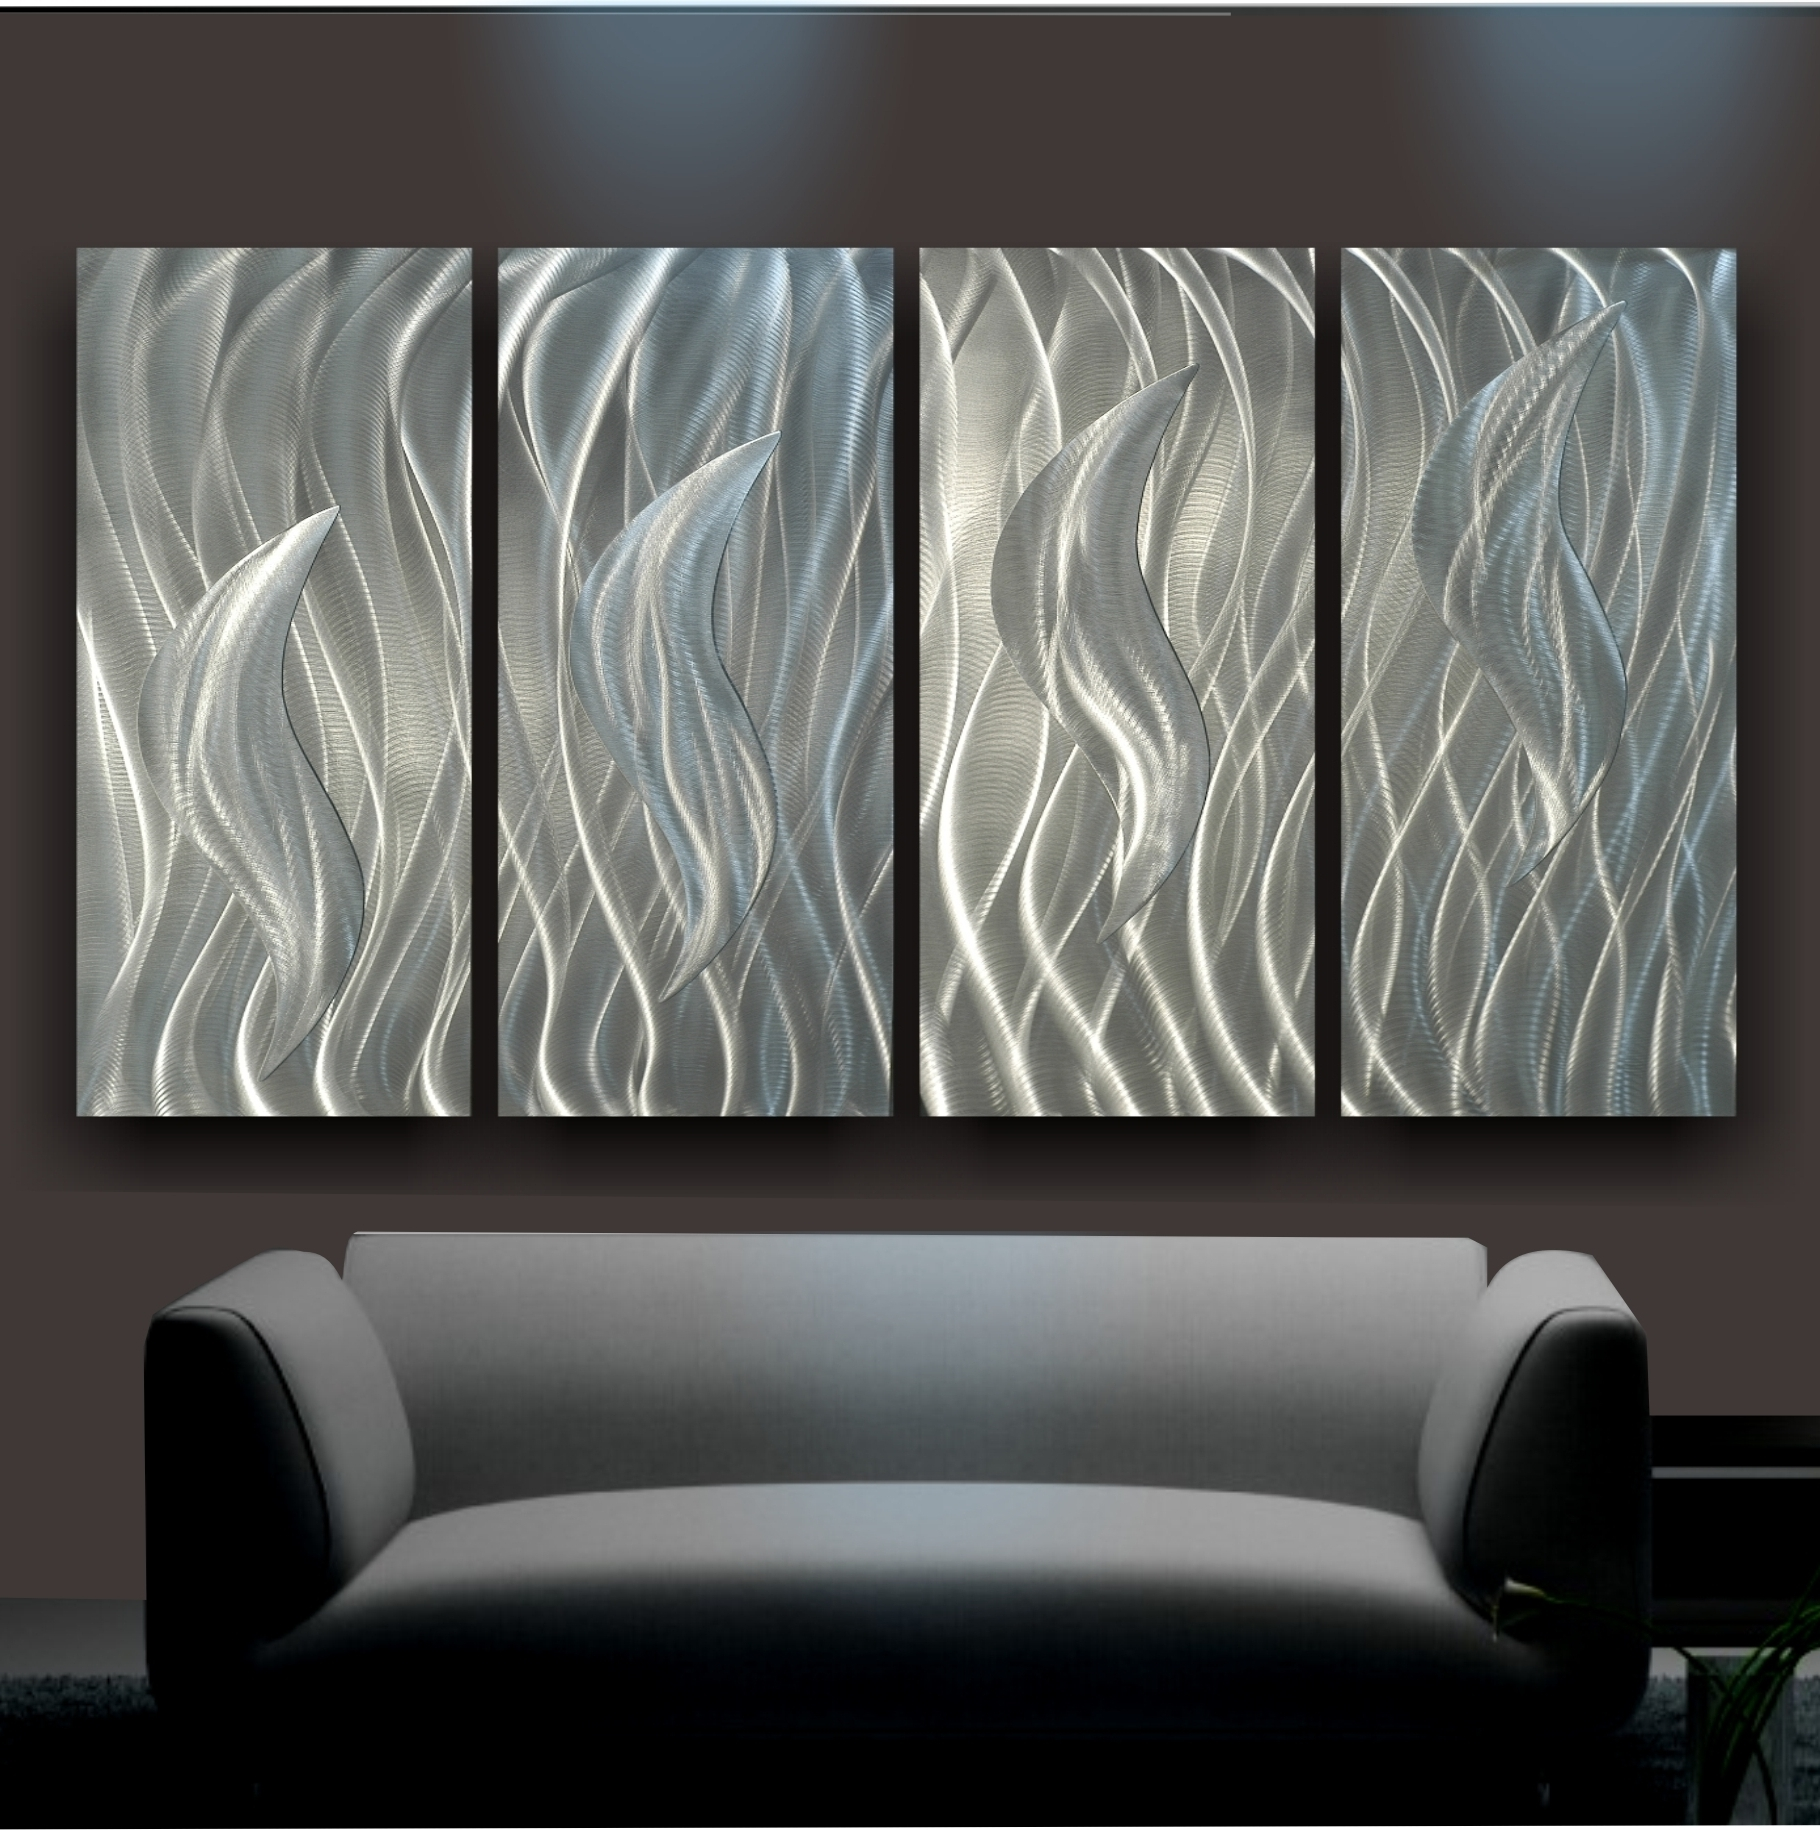 Steel Wall Surface Fine Art Is A Contemporary Sort Of Art Work With Most Current Aluminum Abstract Wall Art (View 7 of 15)